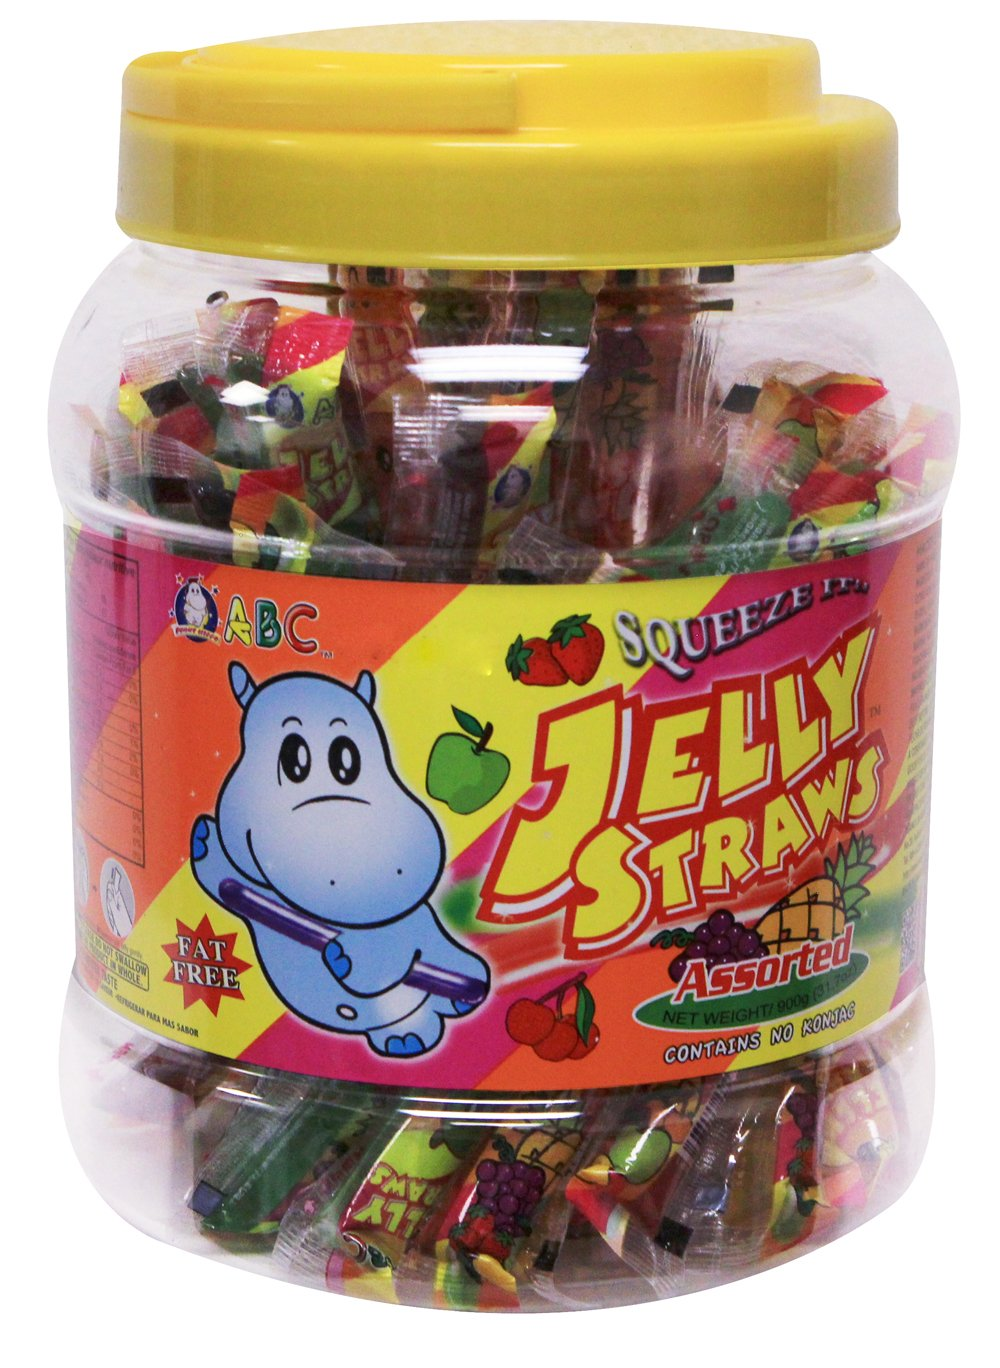 """ABC Fat free """"Squeeze it"""" Fruitery Fruit Jelly straws -Assorted (31.7 oz)"""